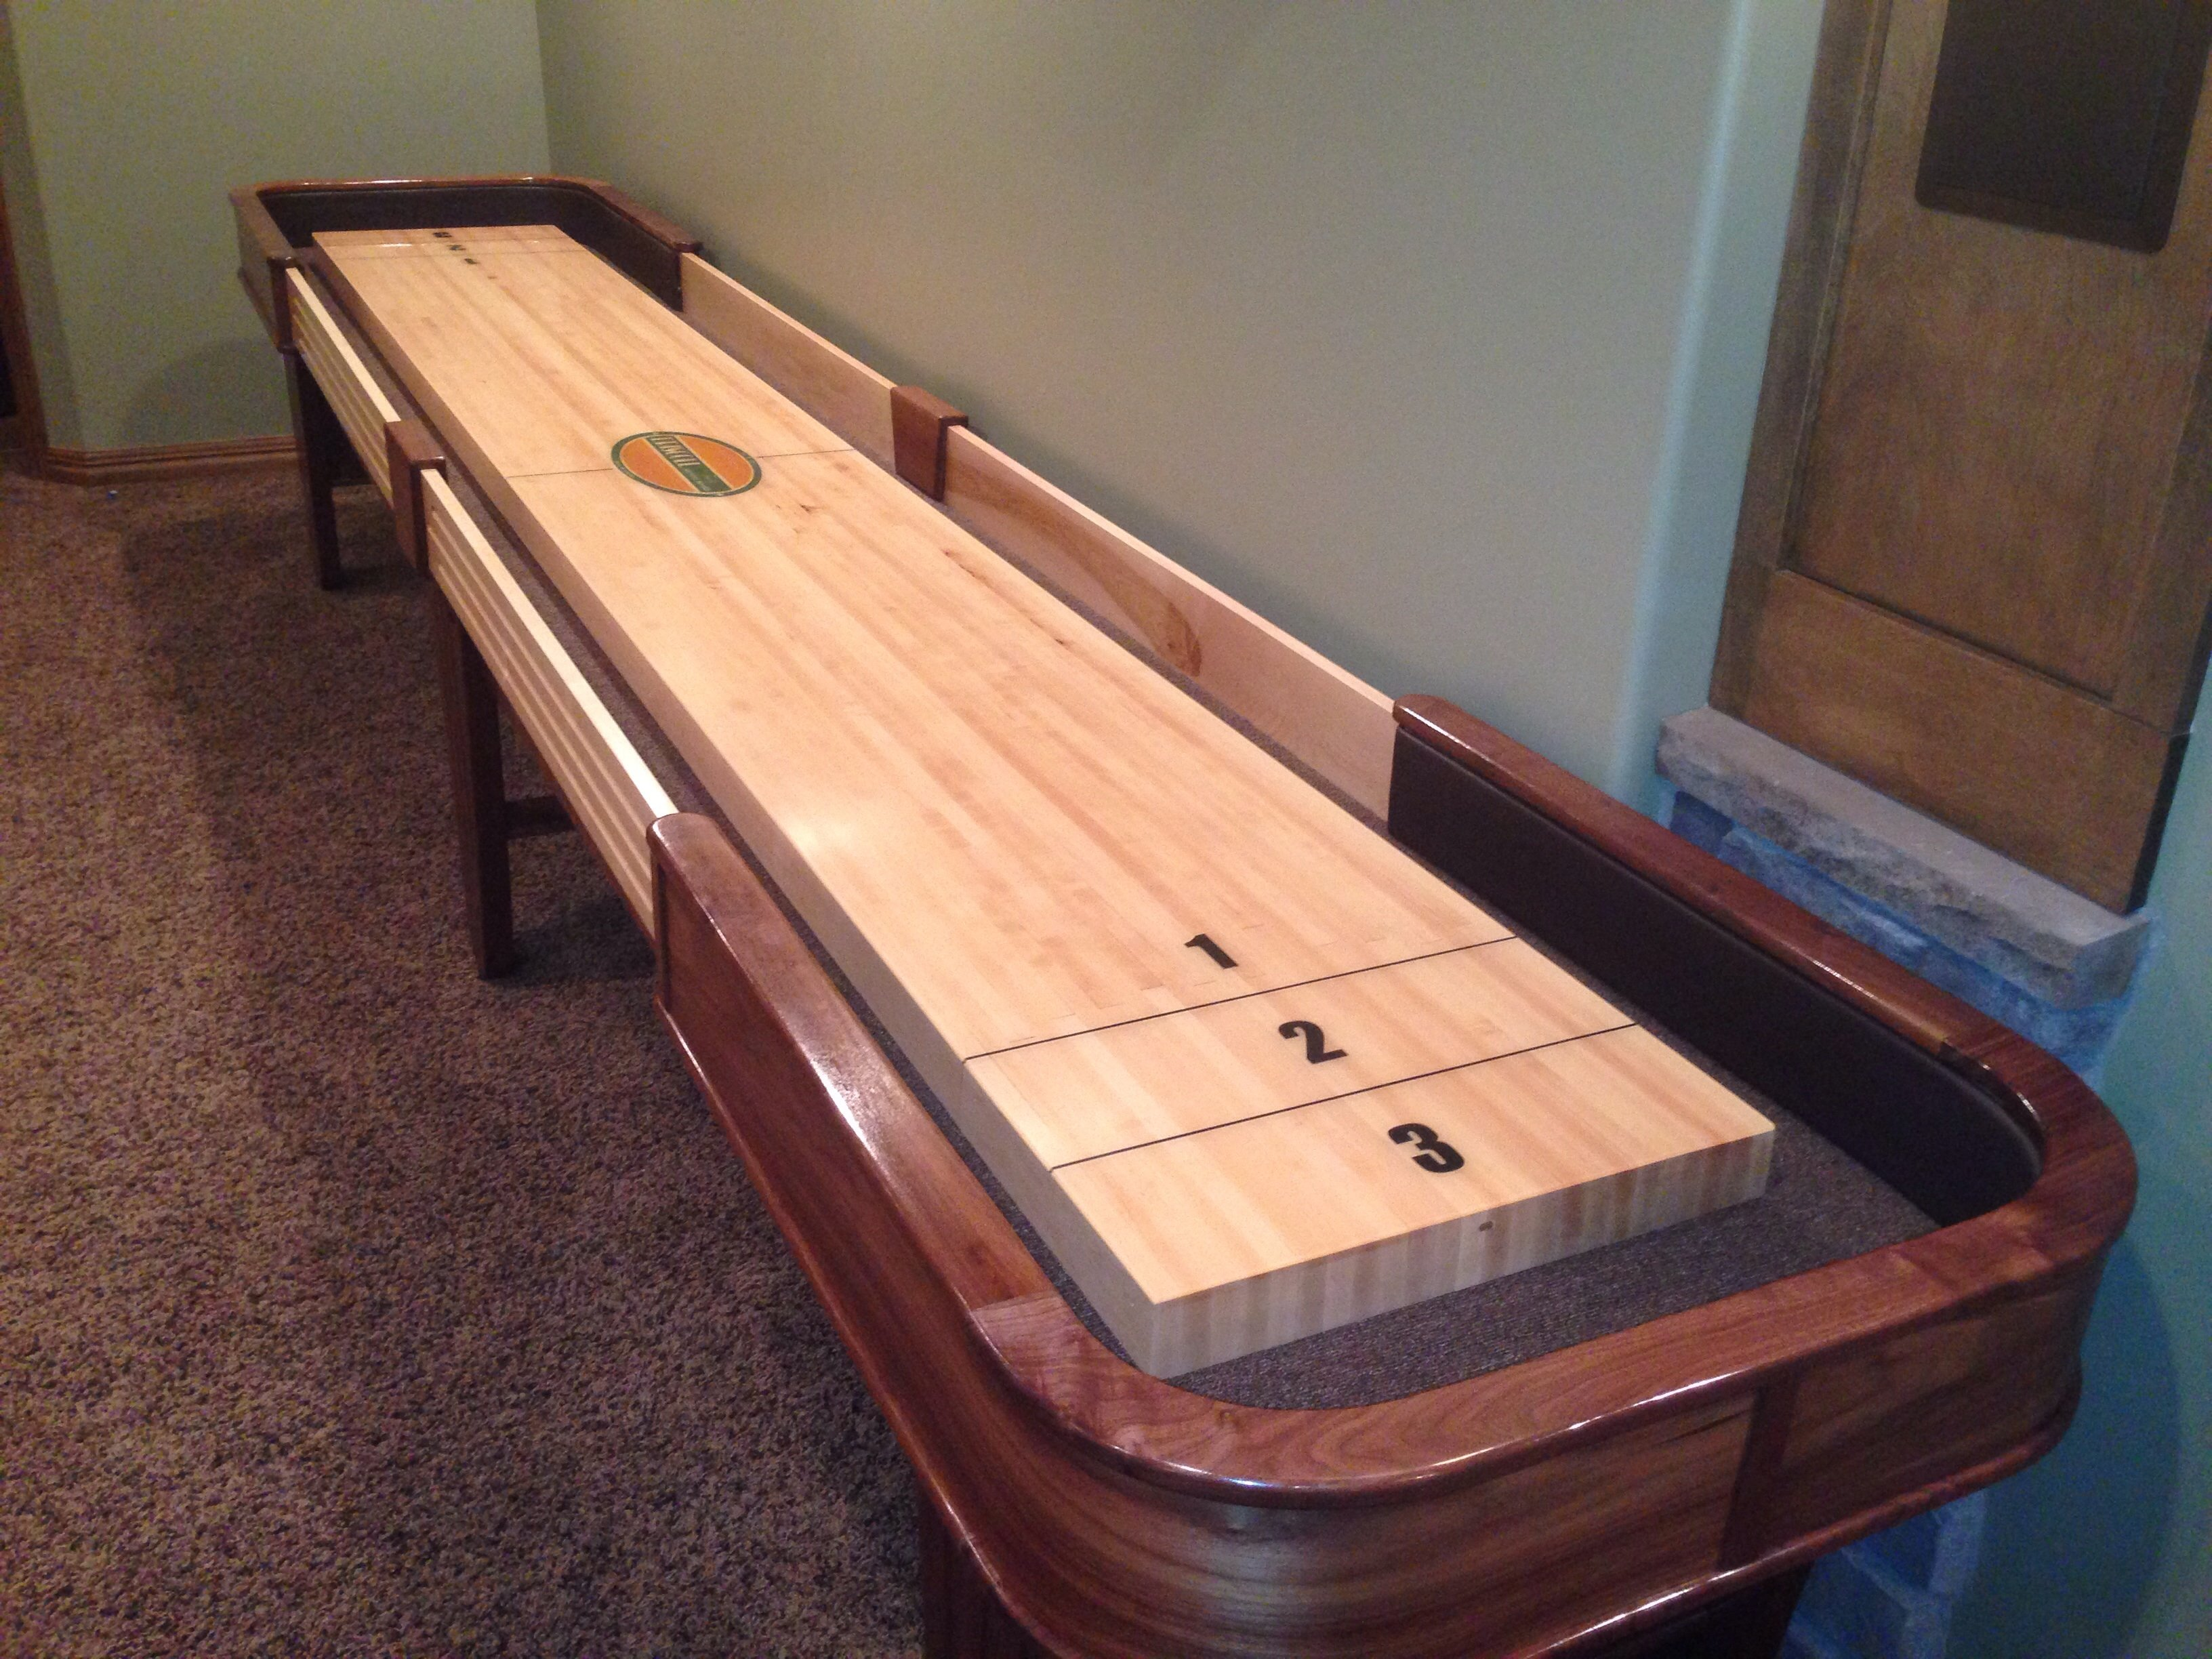 Winter Shuffleboard Project Complete   AVS Forum | Home Theater Discussions  And Reviews